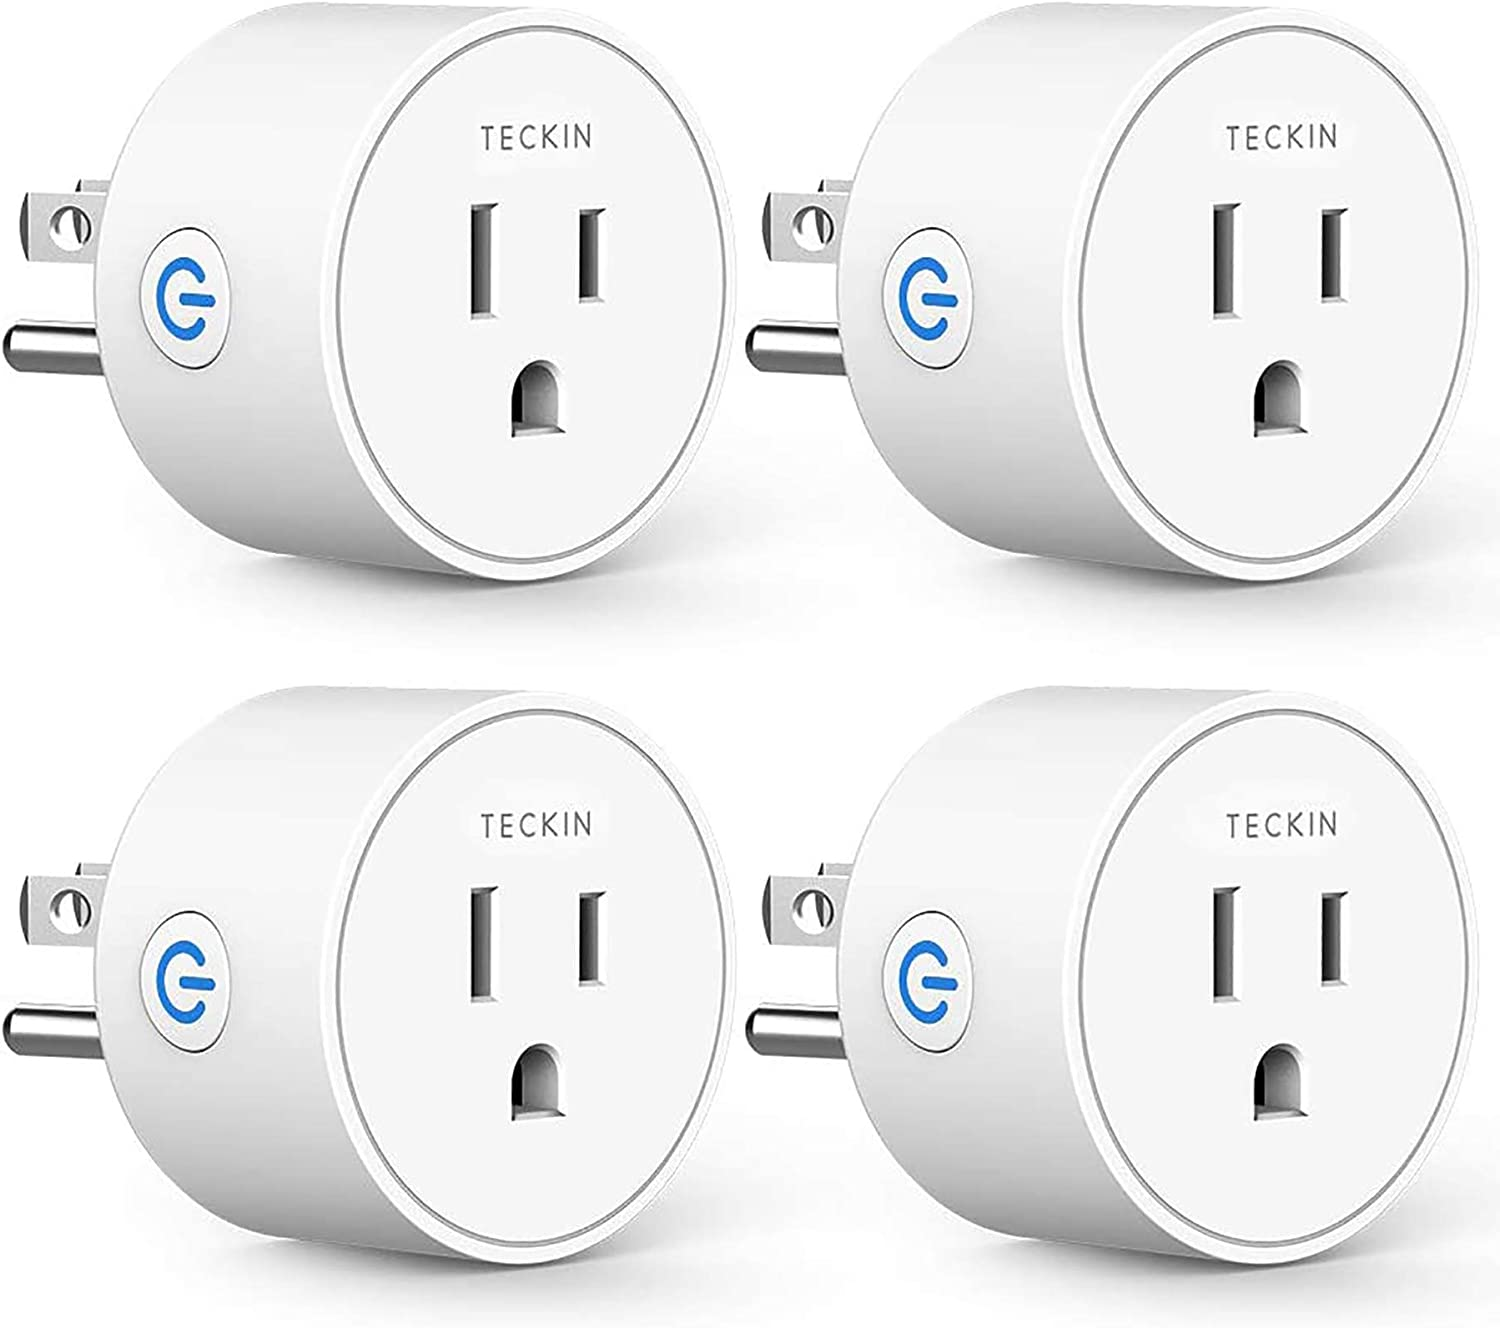 Smart Plug Compatible with Alexa Google Assistant for Voice Control, Teckin Mini Smart Outlet Wifi Socket with Timer Function, No Hub Required, White FCC ETL Certified - -